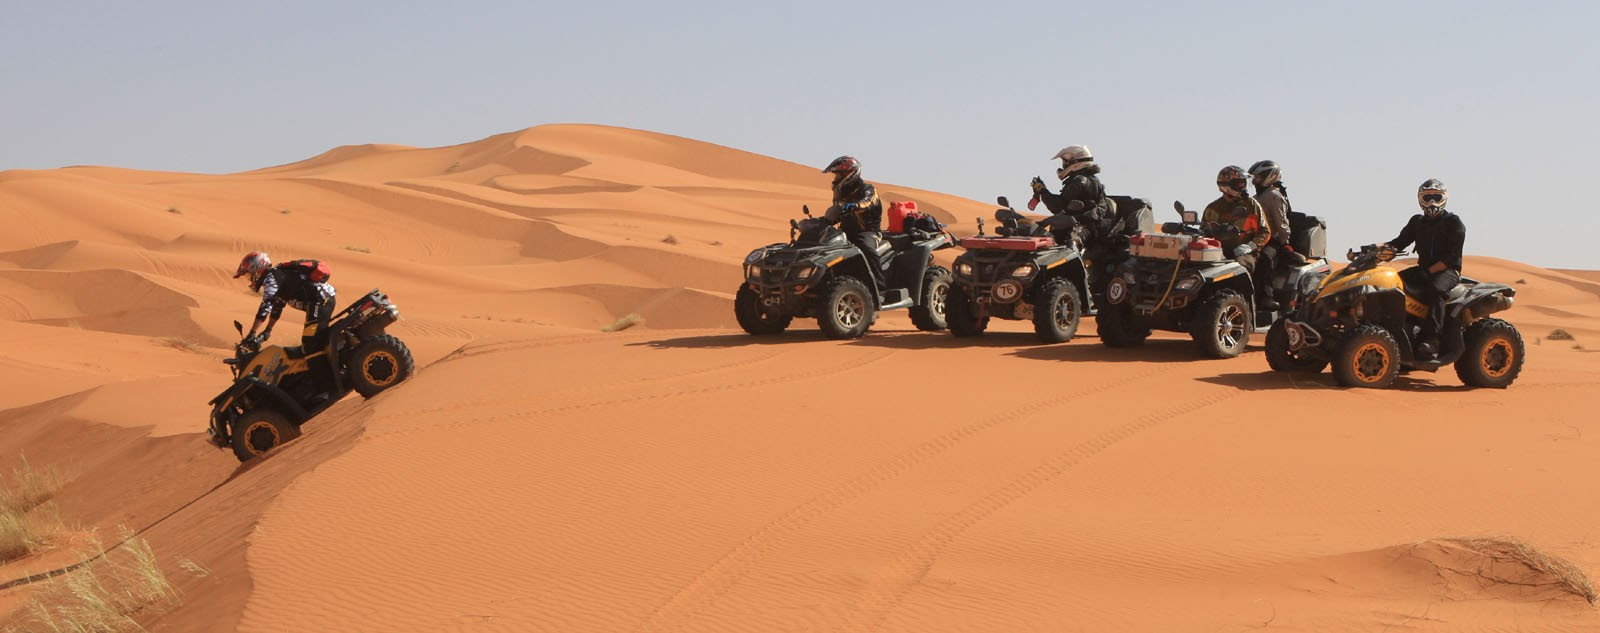 Desert Quad Bike Safari in Hurghada to Bedouin Village